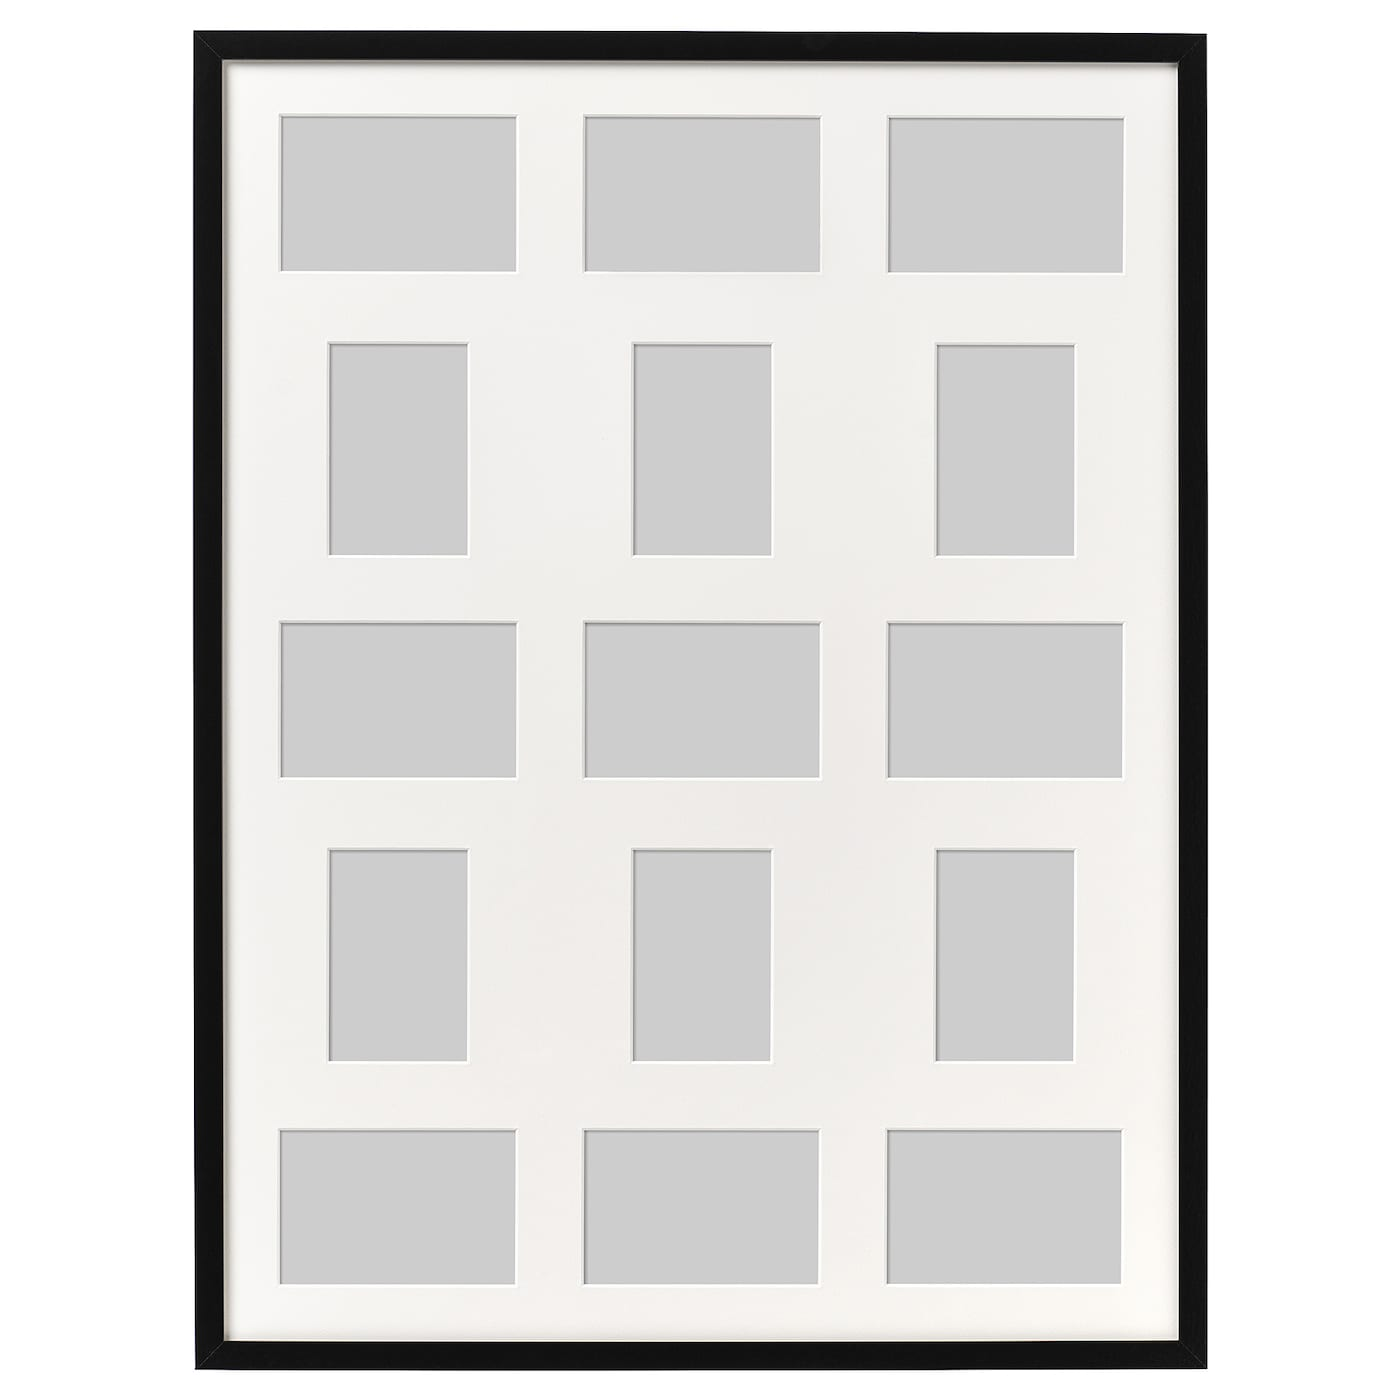 RIBBA Frame for 15 pictures Black 60 x 80 cm - IKEA